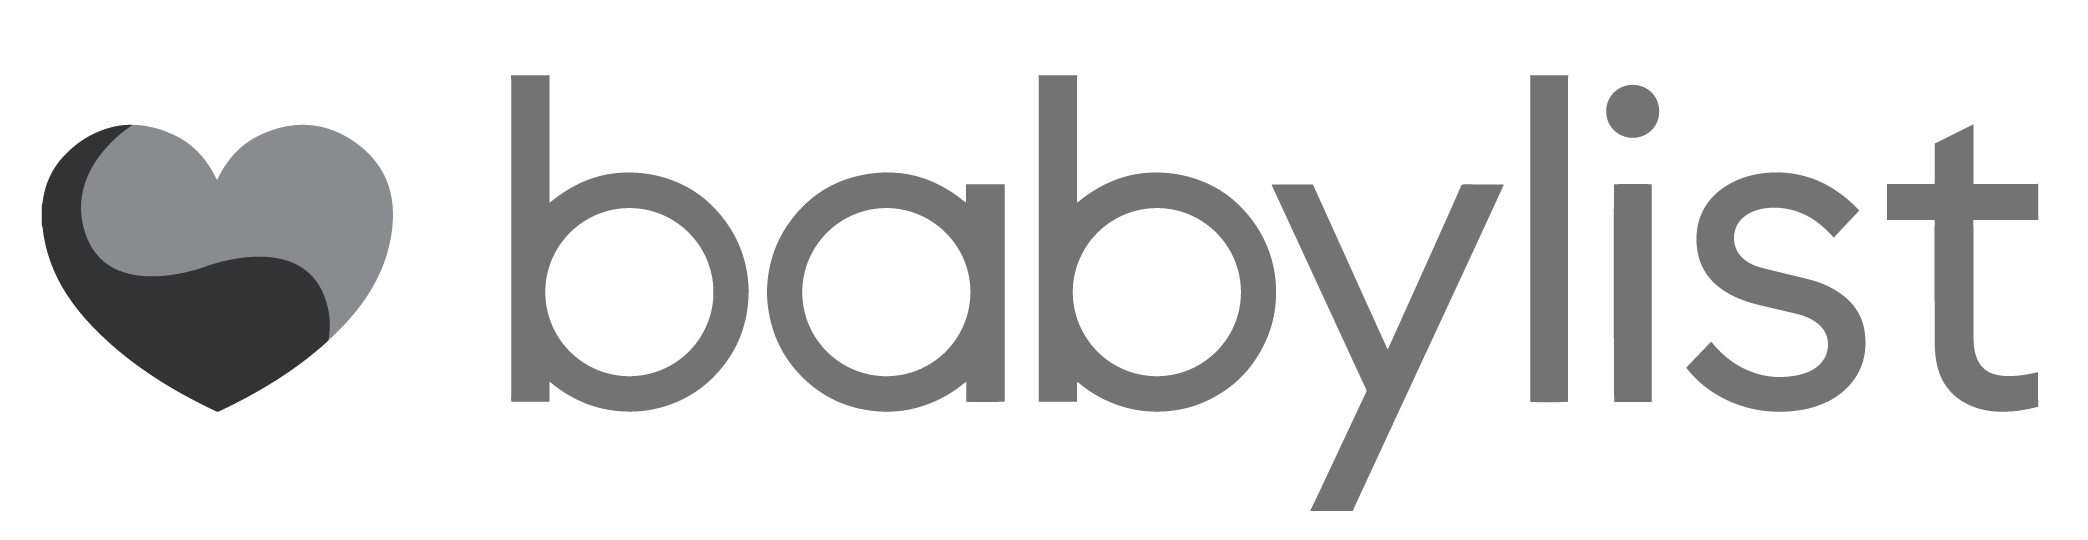 Babylist-Final-Greyscale2019.png